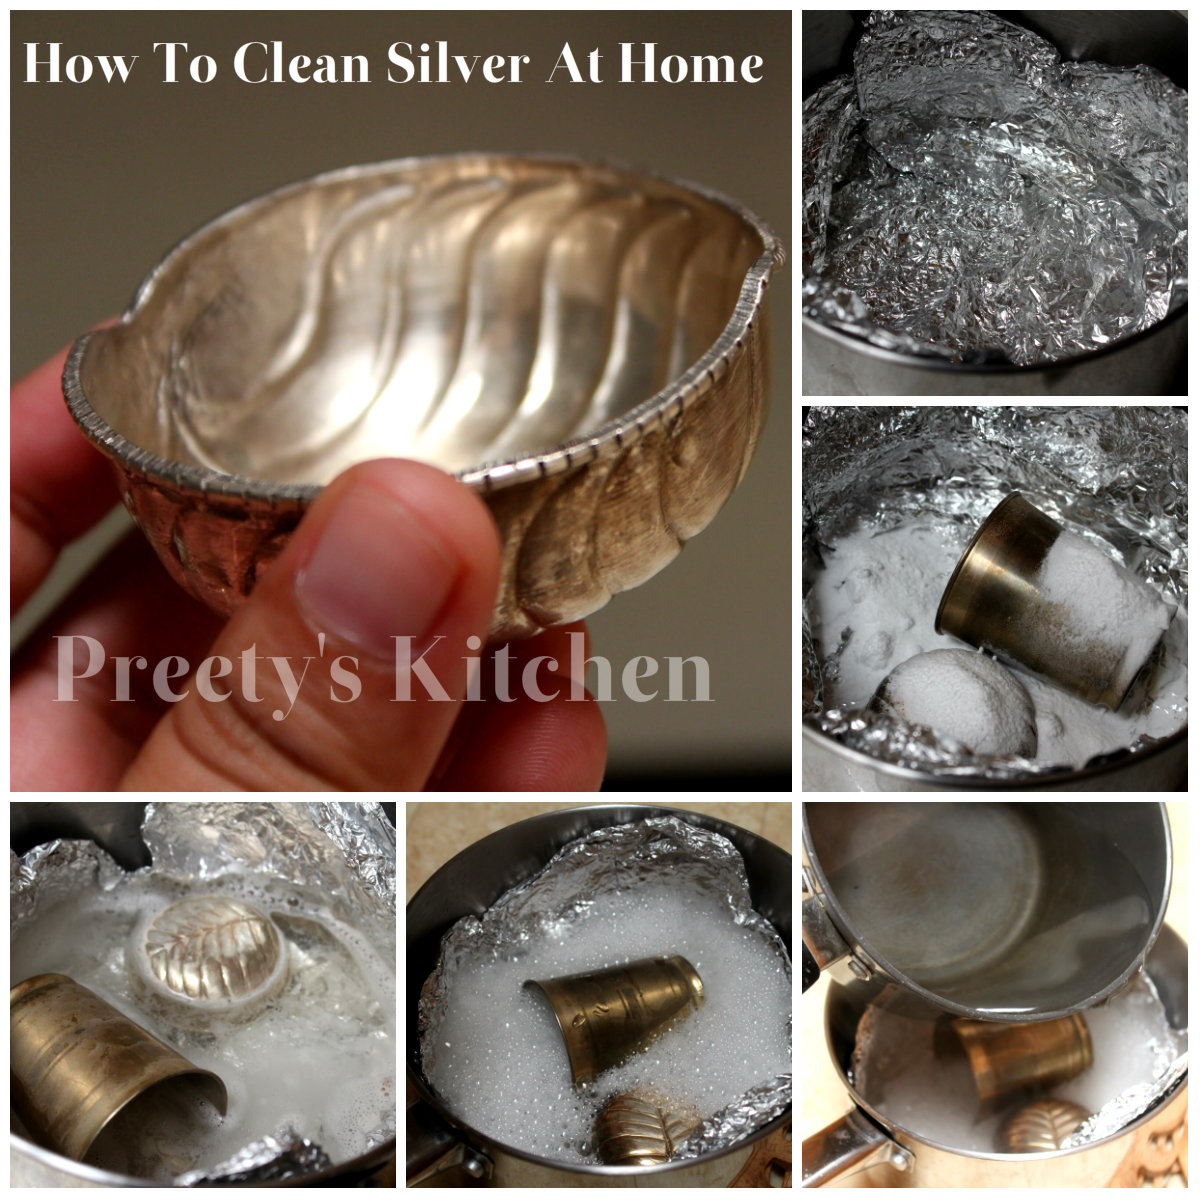 How To Clean Silver At Home Using Natural Cleaners With Pictures Cleaning Tips